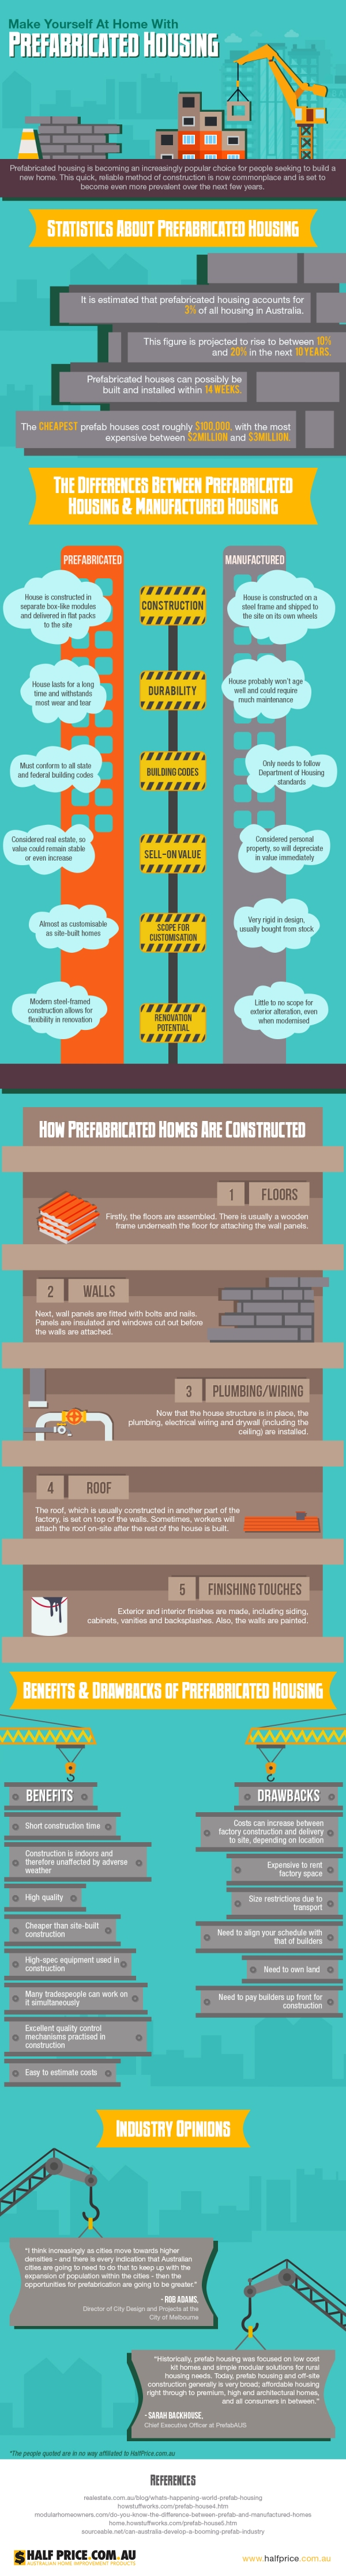 Prefabricated housing in Australia infographic.jpg